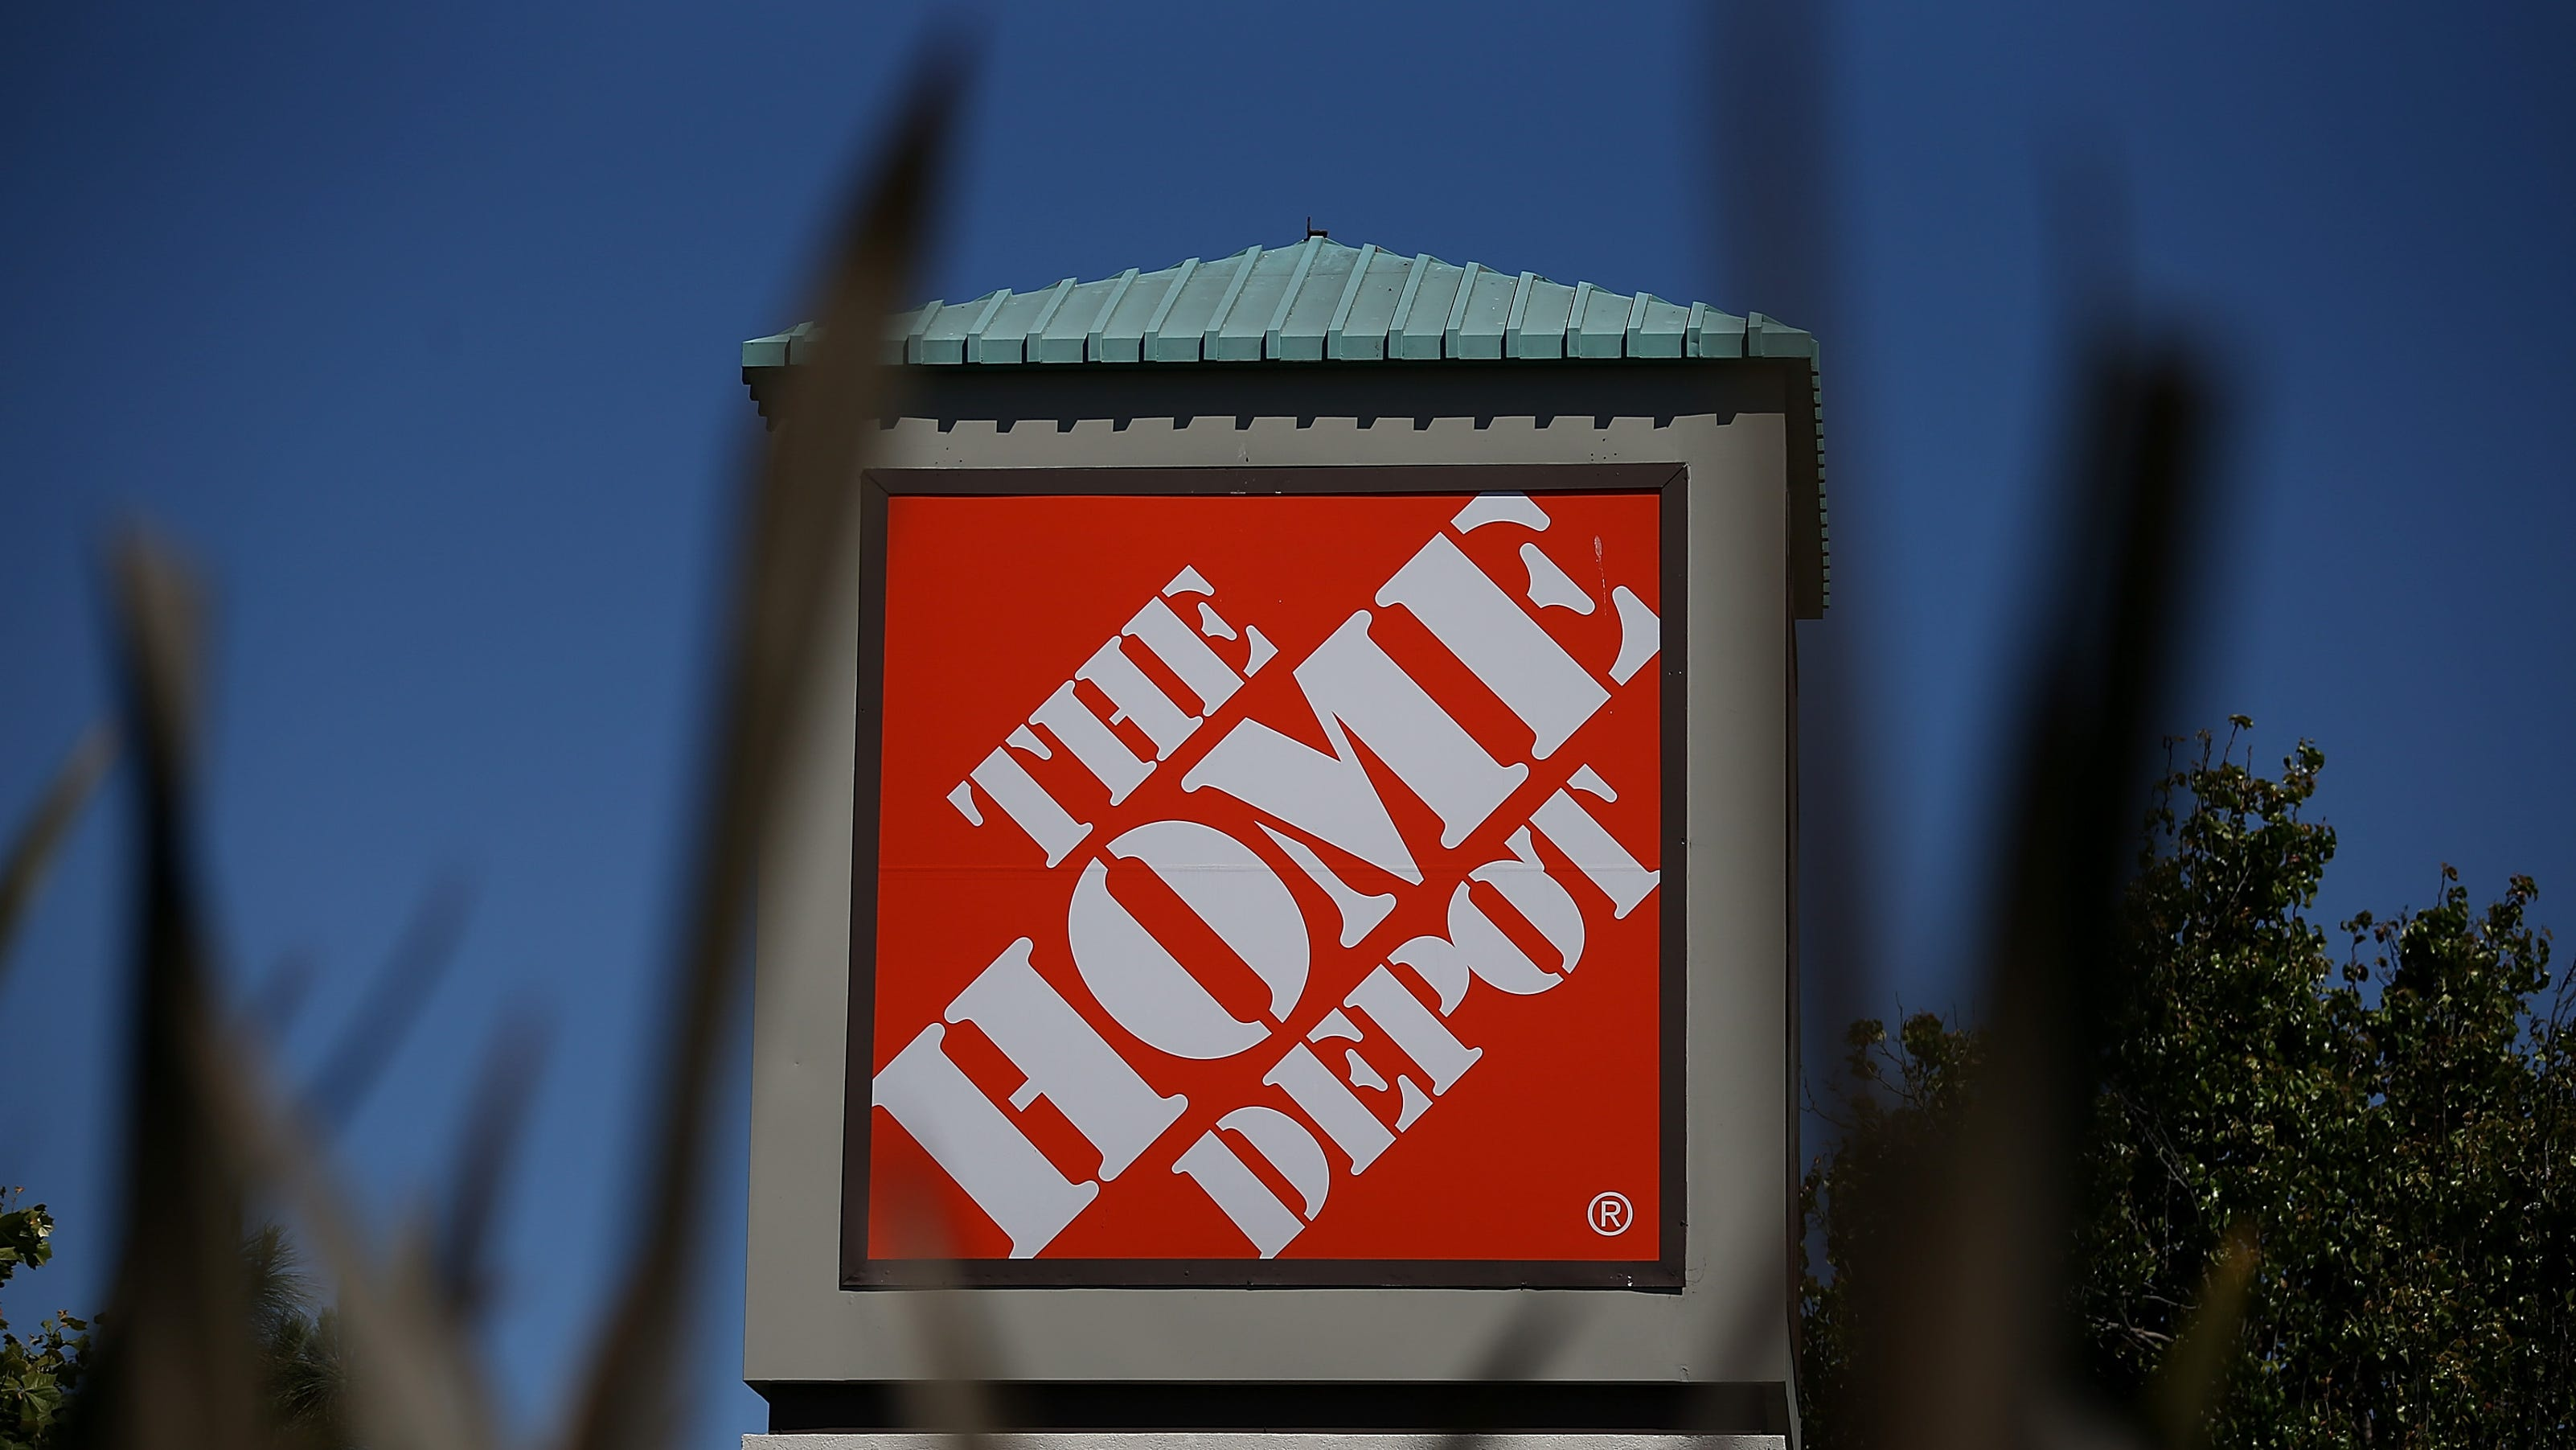 Home Depot Card breach put 56 million cards at risk